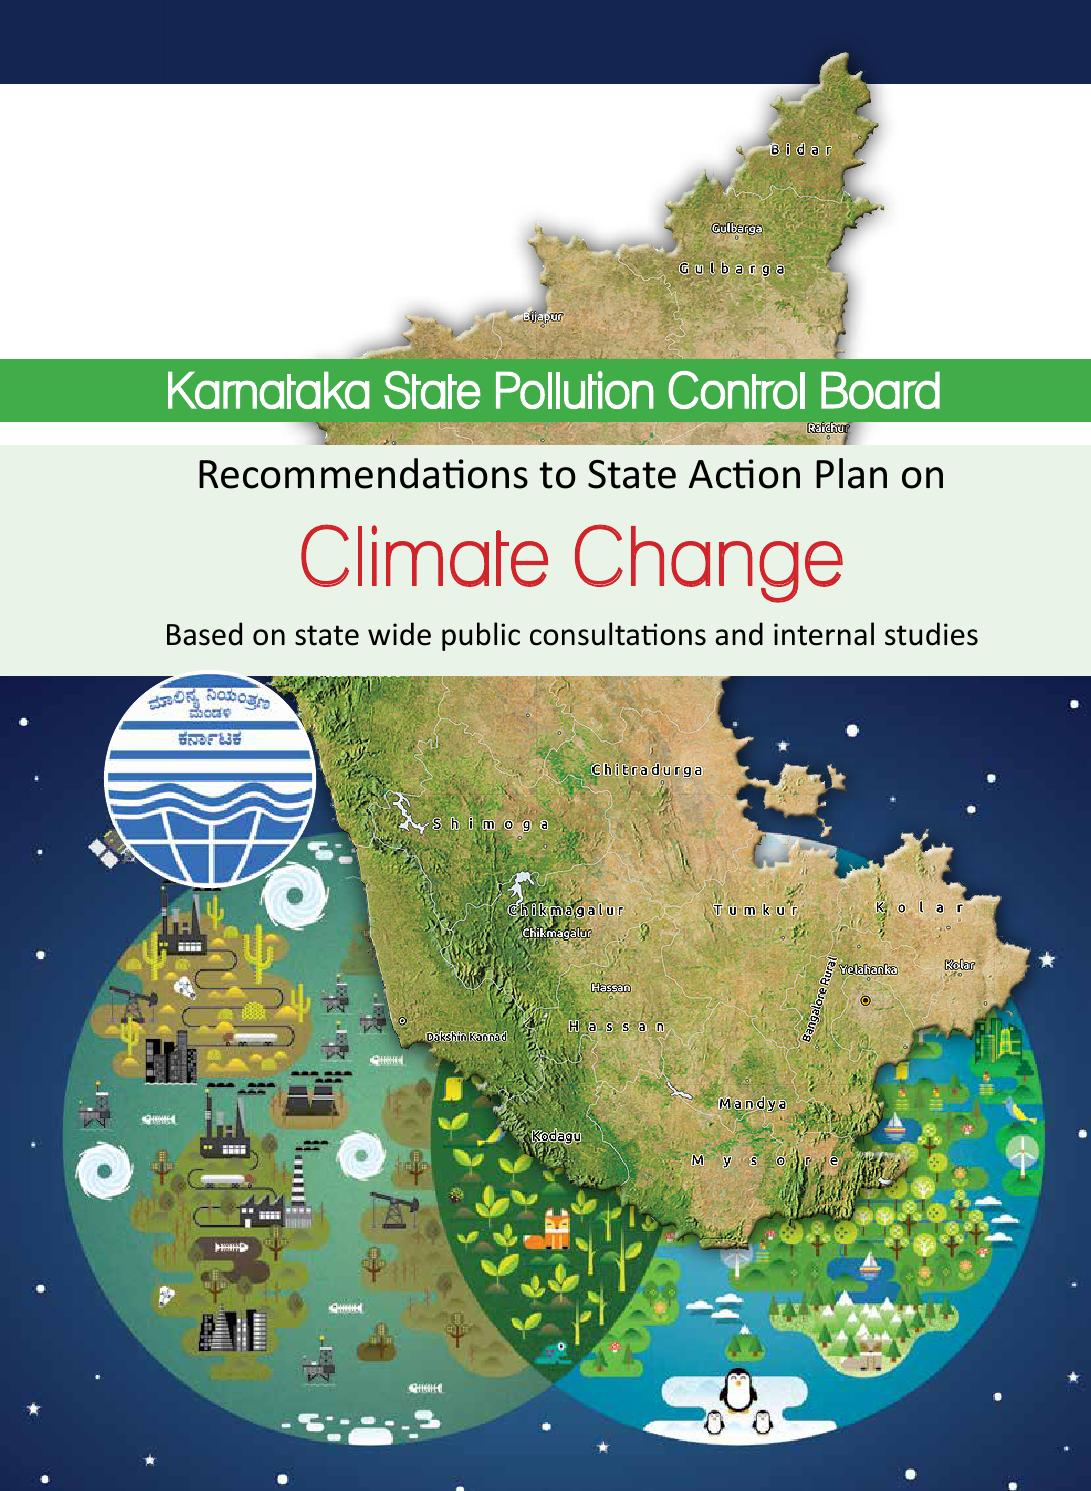 Recommendations to karnataka state action plan on climate change by recommendations to karnataka state action plan on climate change by beluru sudarshana issuu biocorpaavc Image collections